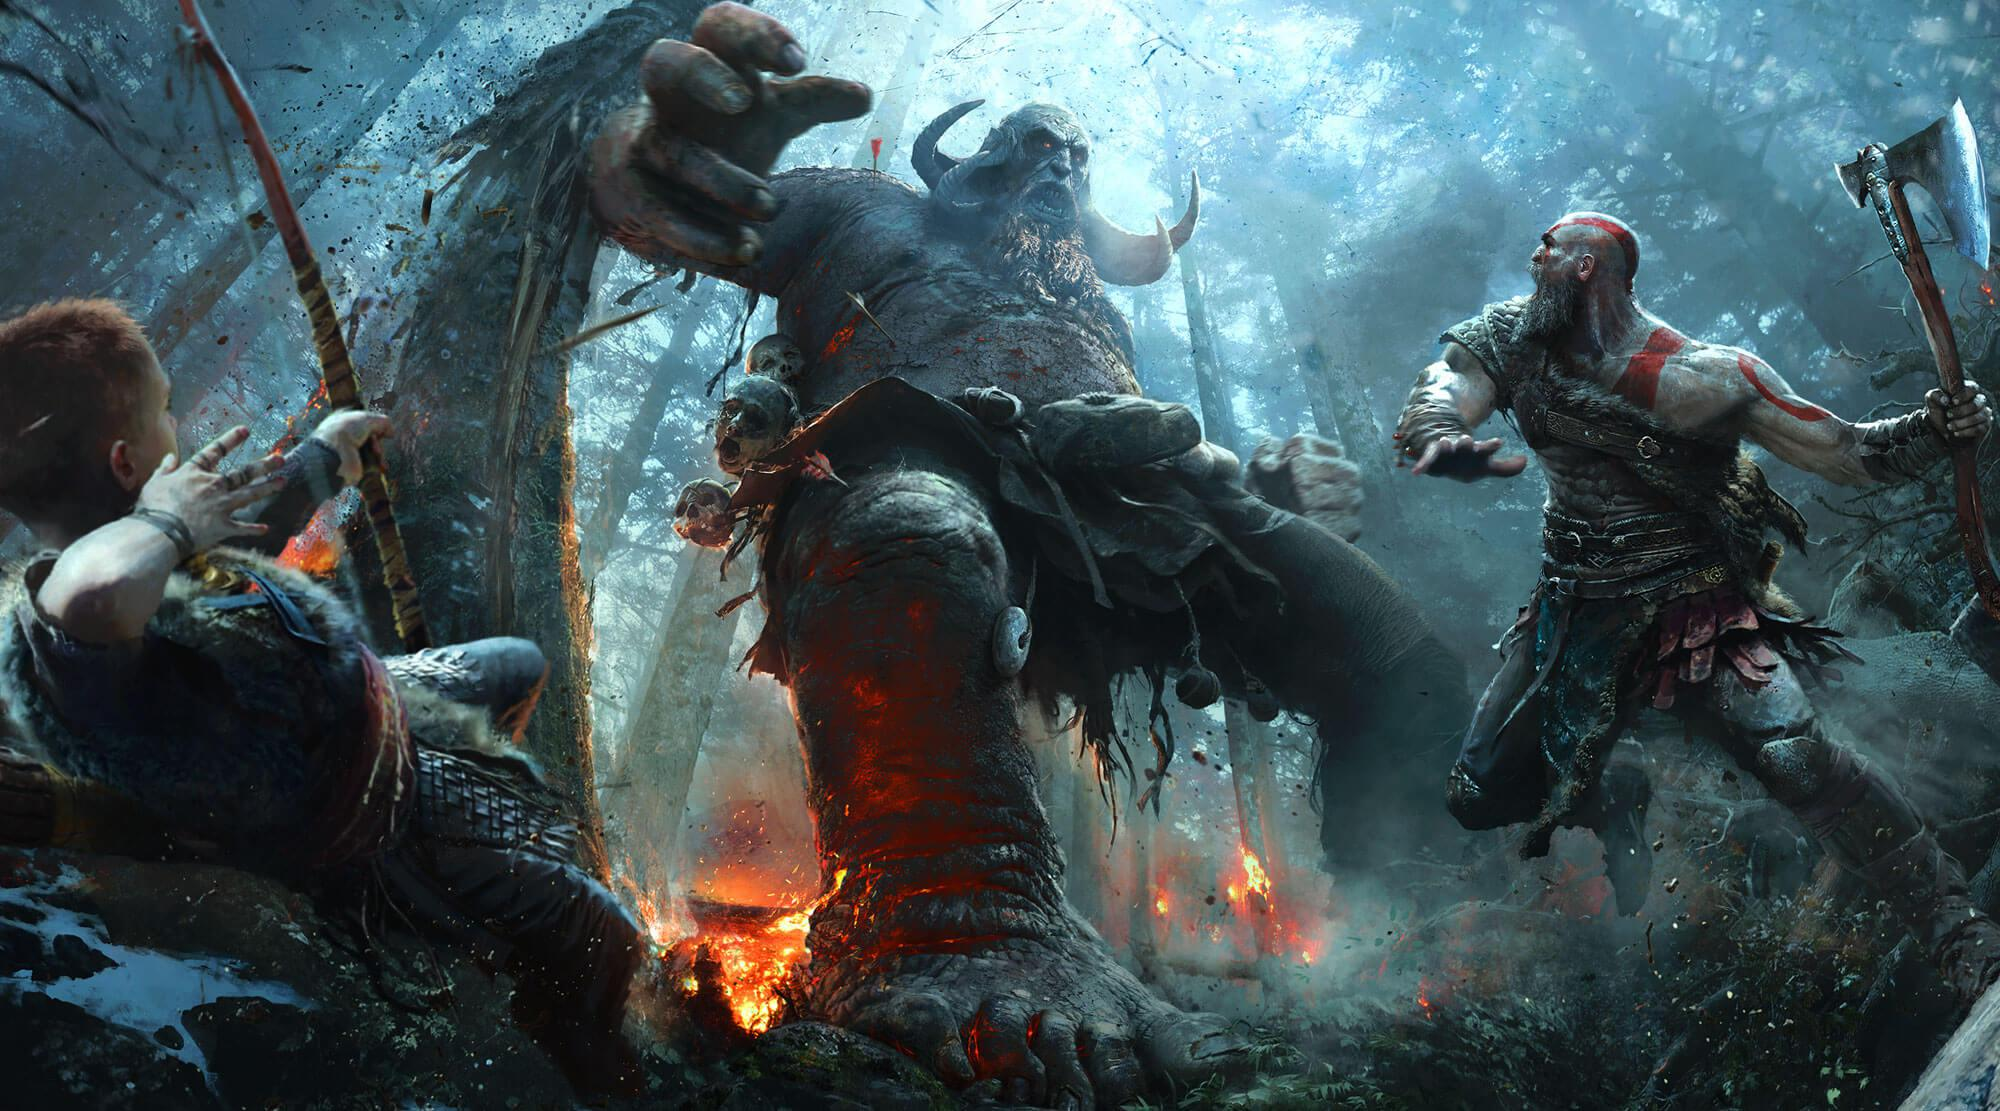 God of War is fast becoming one of the most-wanted games - let's hope it's not delayed again